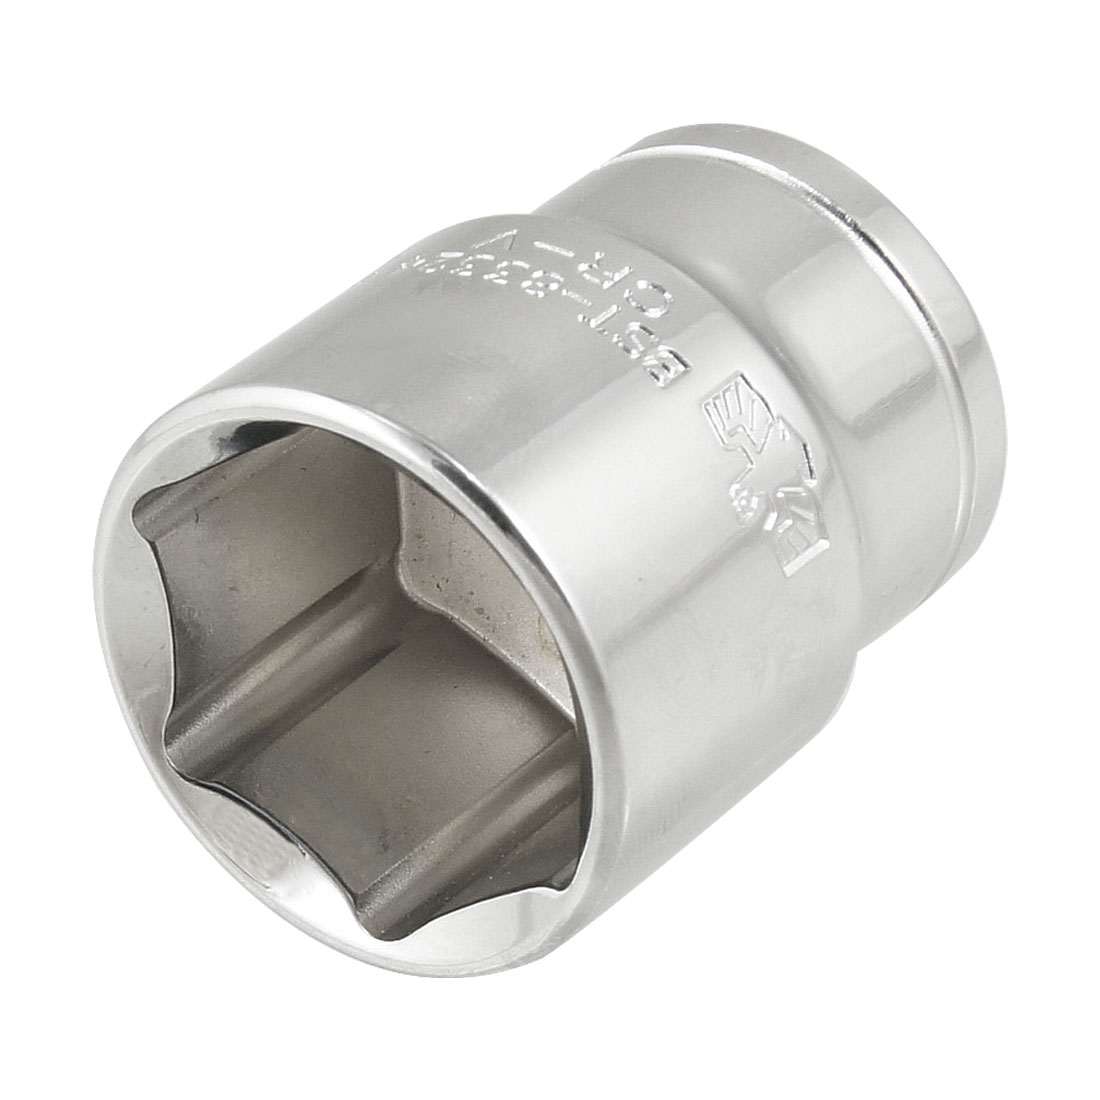 "24mm 6 Point Hex Socket 1/2"" Square Drive Hardware Tool"